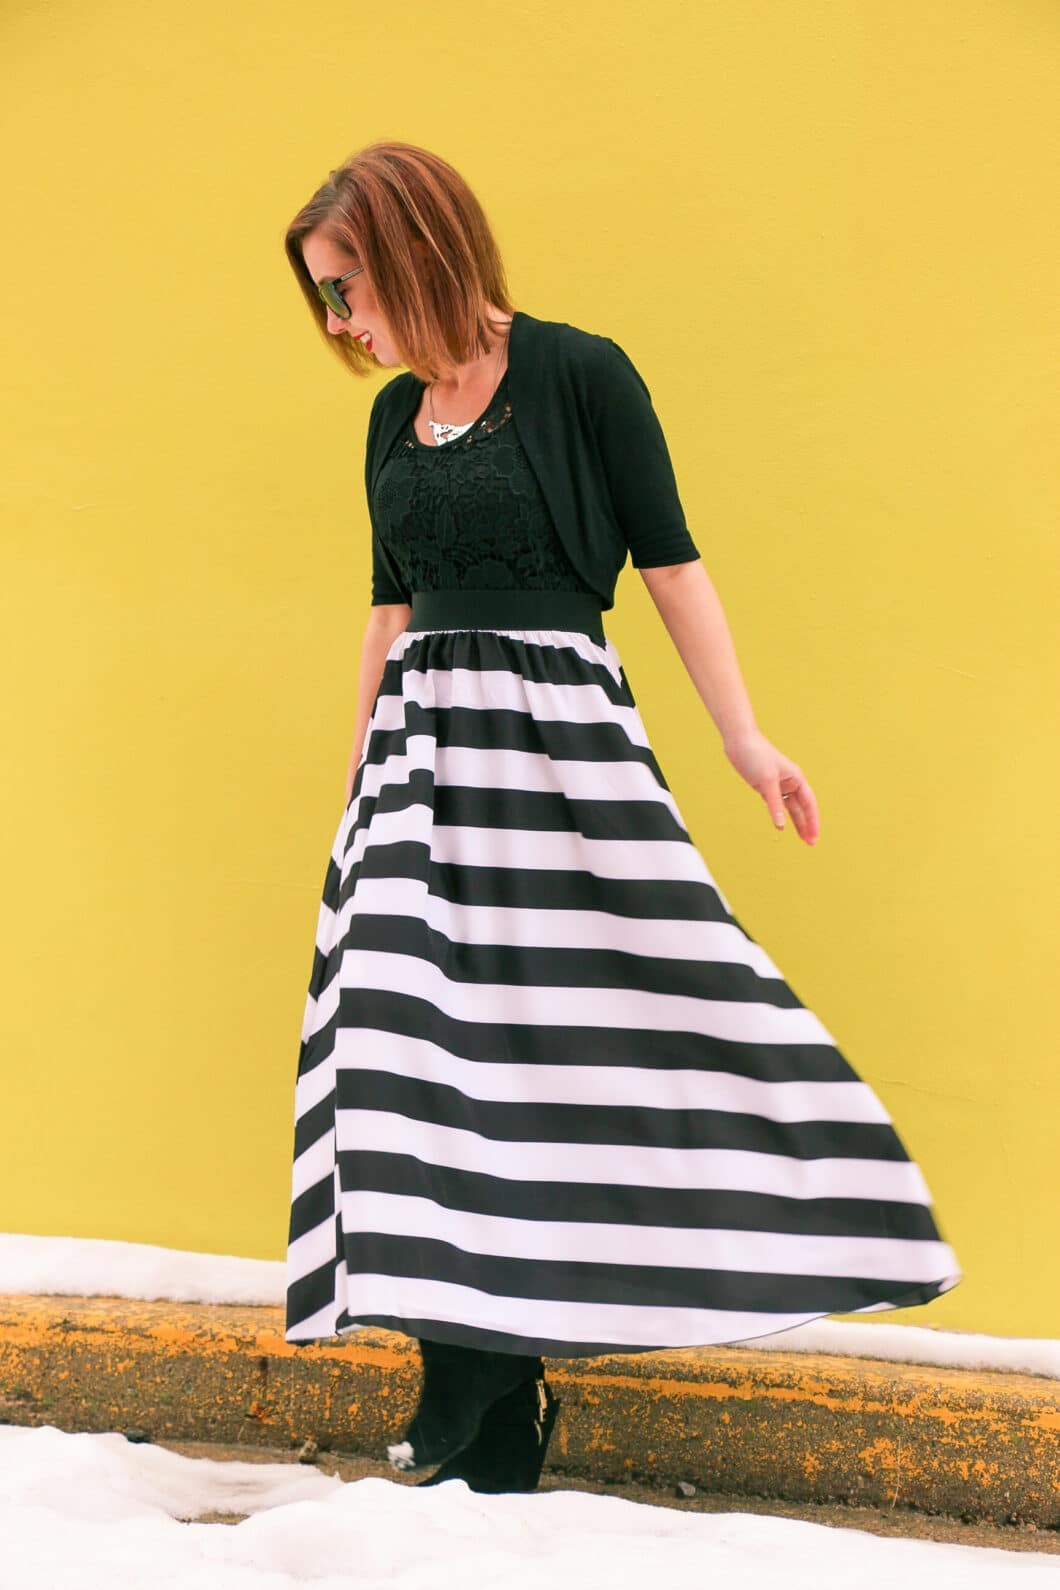 The Maxi Dress: From Summer to Winter